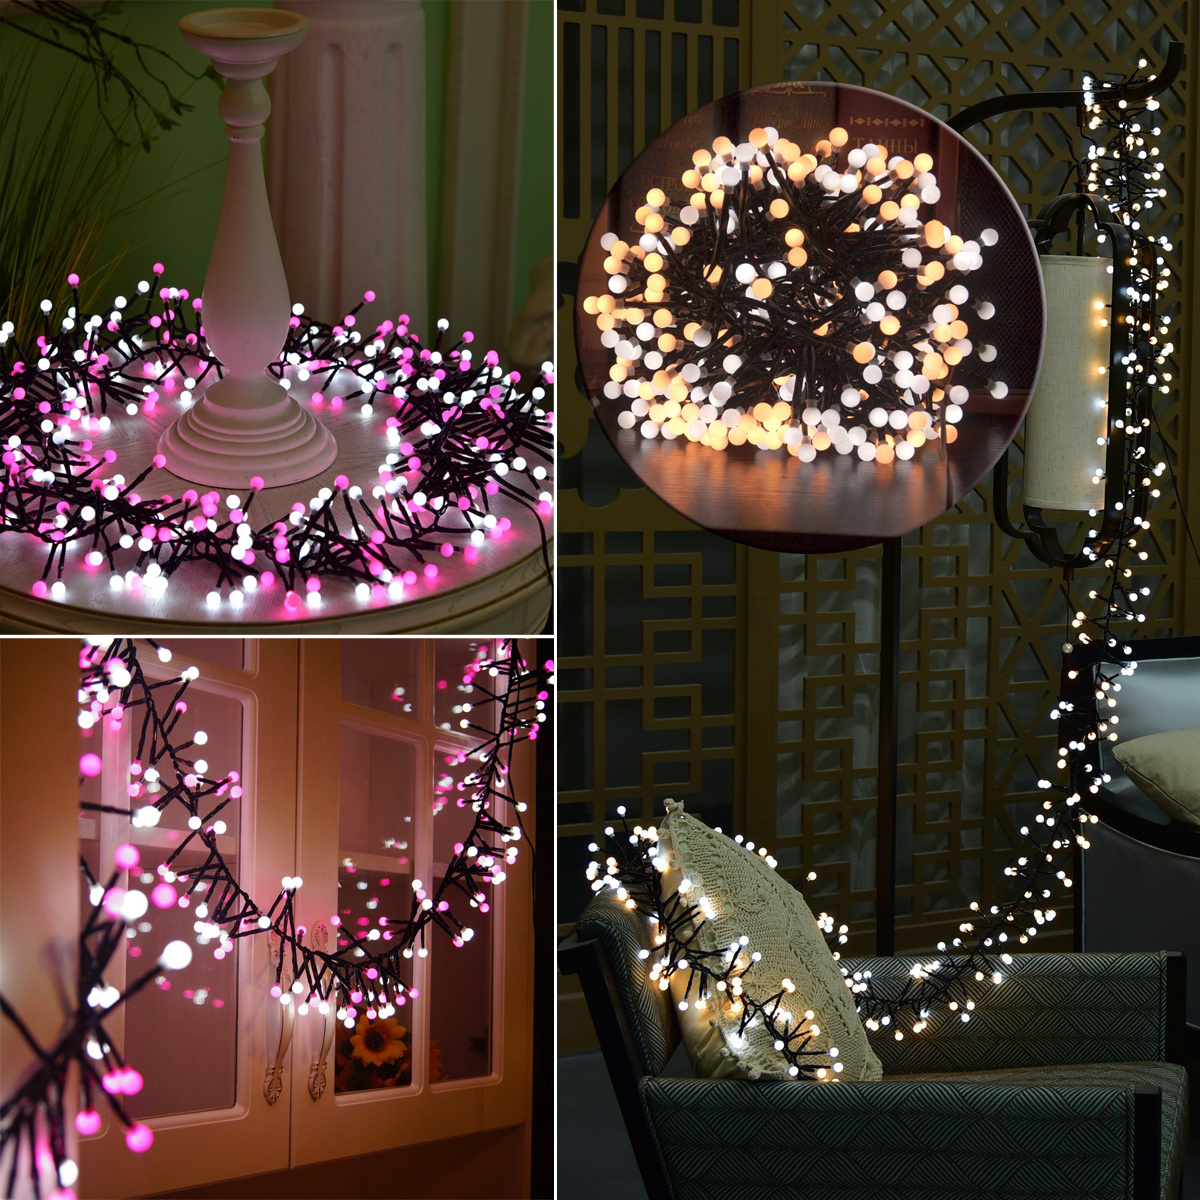 400 Led Cluster Fairy Lights Christmas Curtain Window Chaser With Valentine Product Picture Show